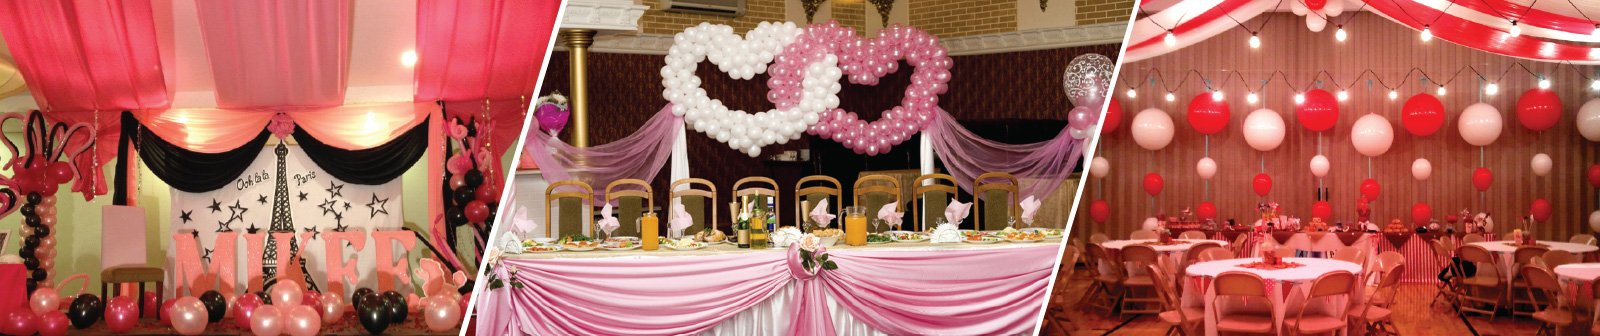 Best Balloon Decorators in Jaipur